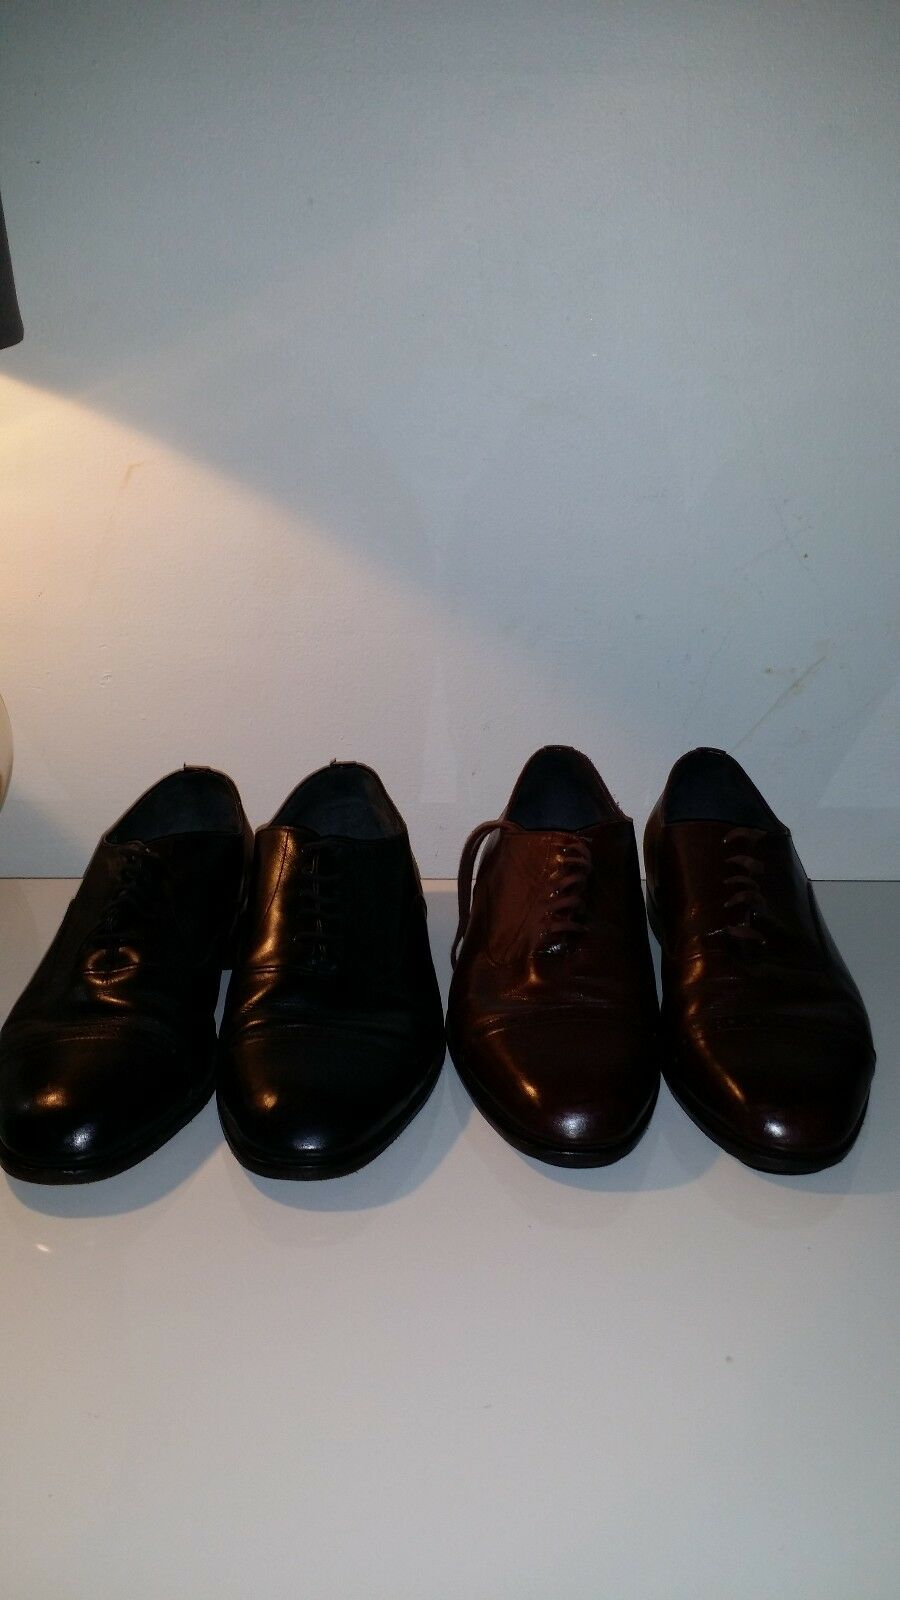 2 Paire FATHER & SON Hommes Chaussures Taille 8.50 Eee et 8.50 D